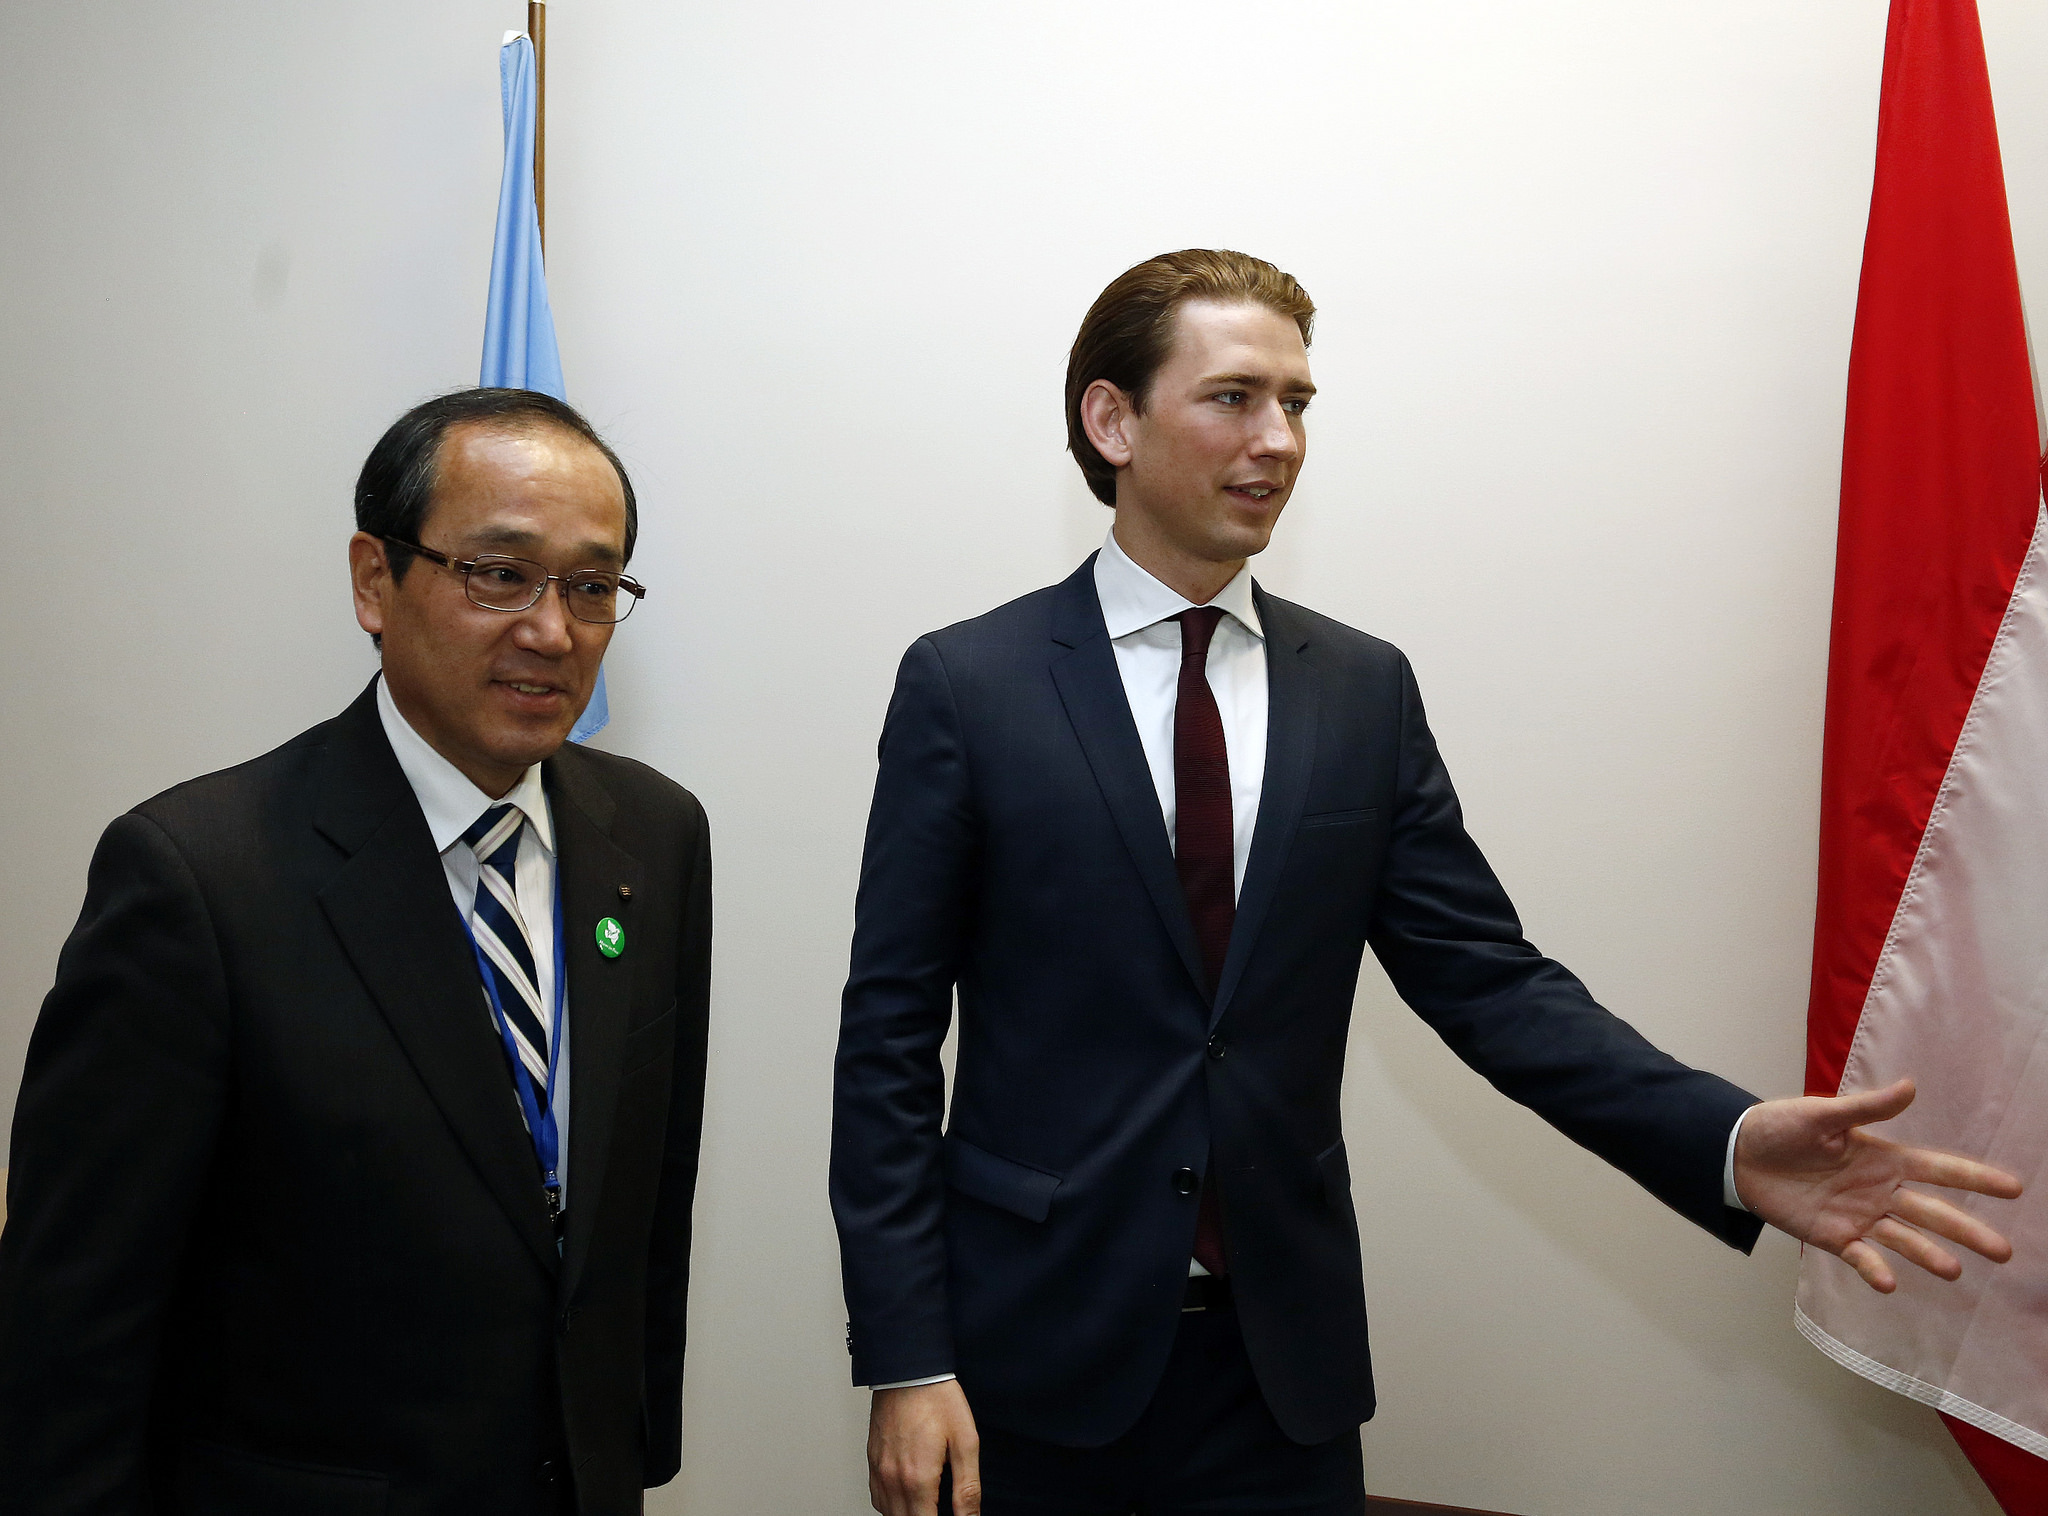 Foreign Minister Sebastian Kurz meets the mayor of Hiroshima, Kazumi Matsui, during the Review  Conference of the Non-Proliferation Treaty (NPT) in New York City. Photo Dragan Tatic.